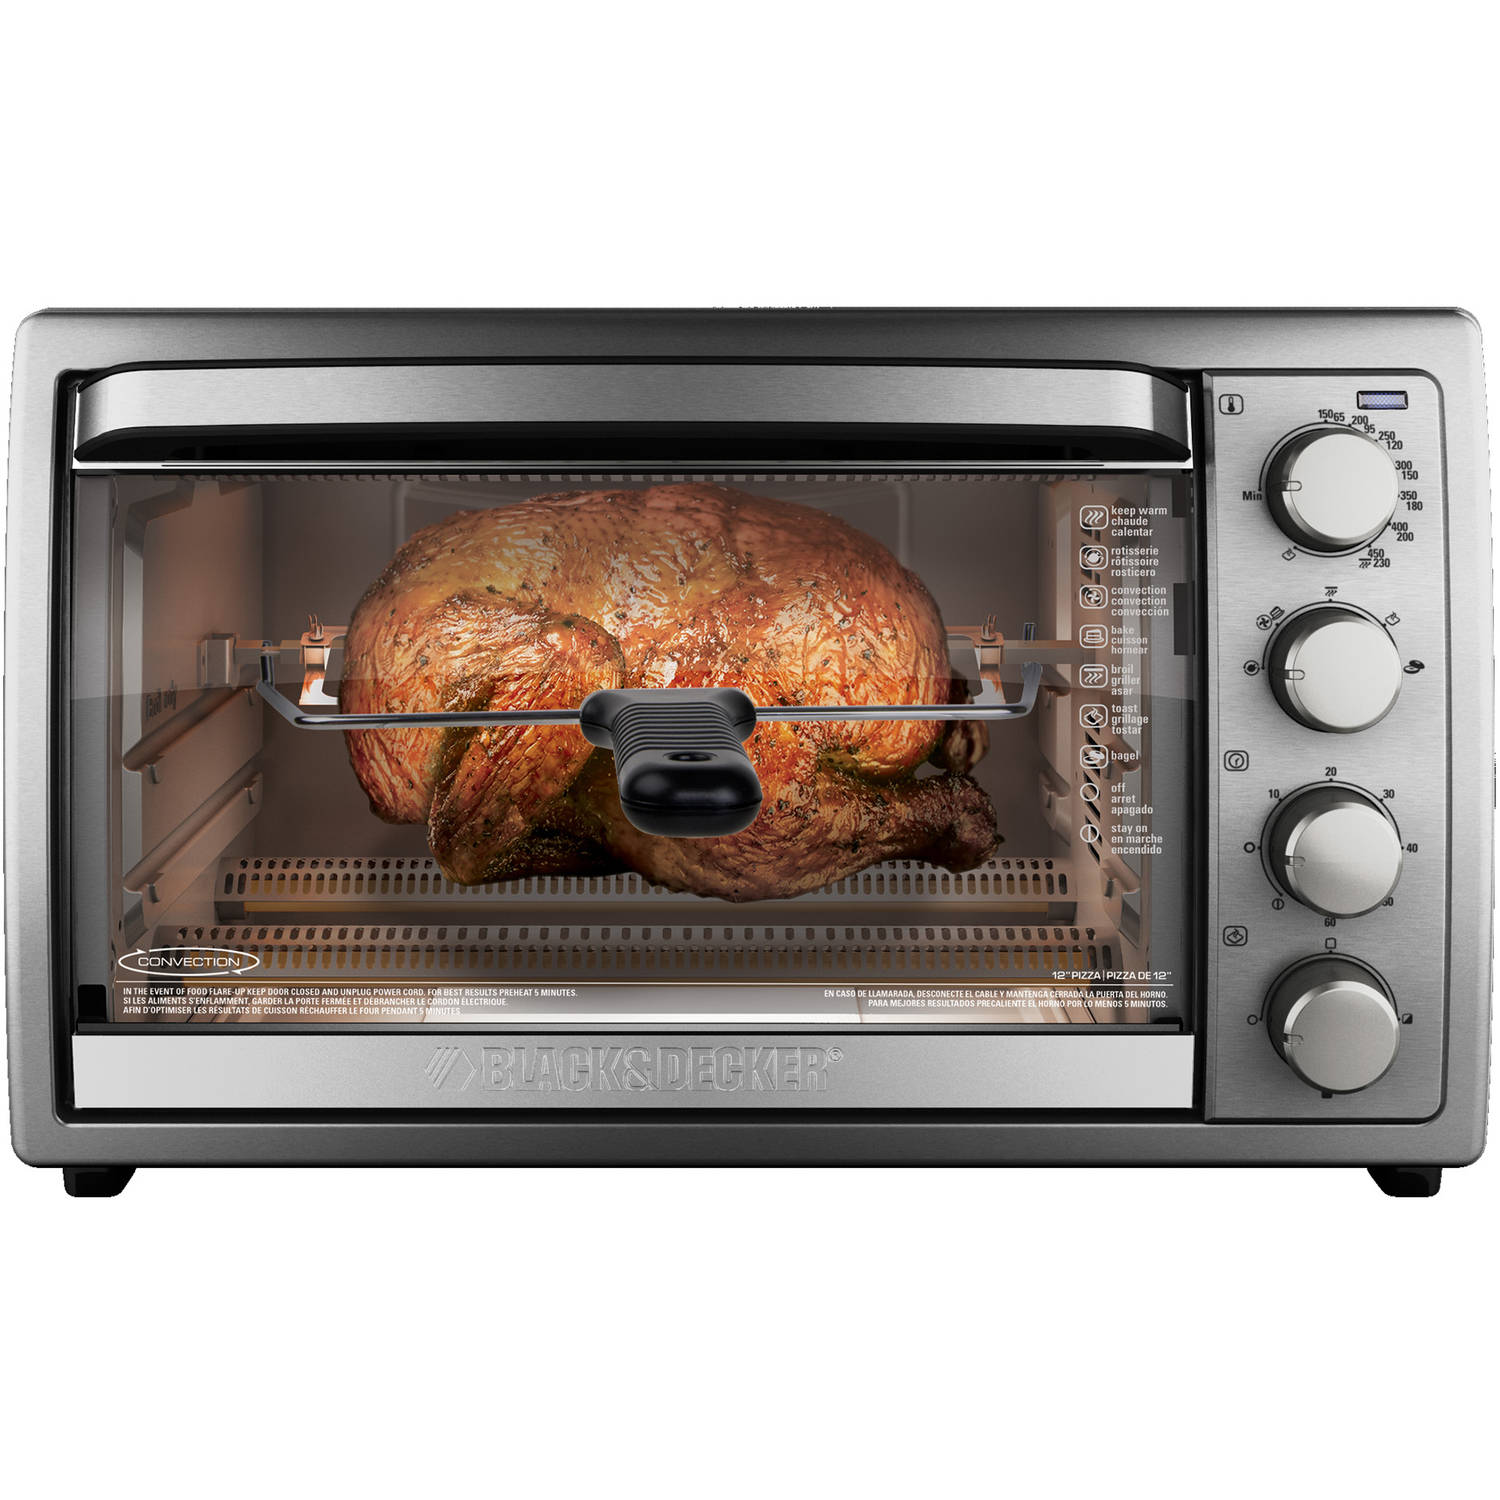 Countertop Oven Philippines Countertop Oven 9 Slice Rotisserie Convection Toaster Bake